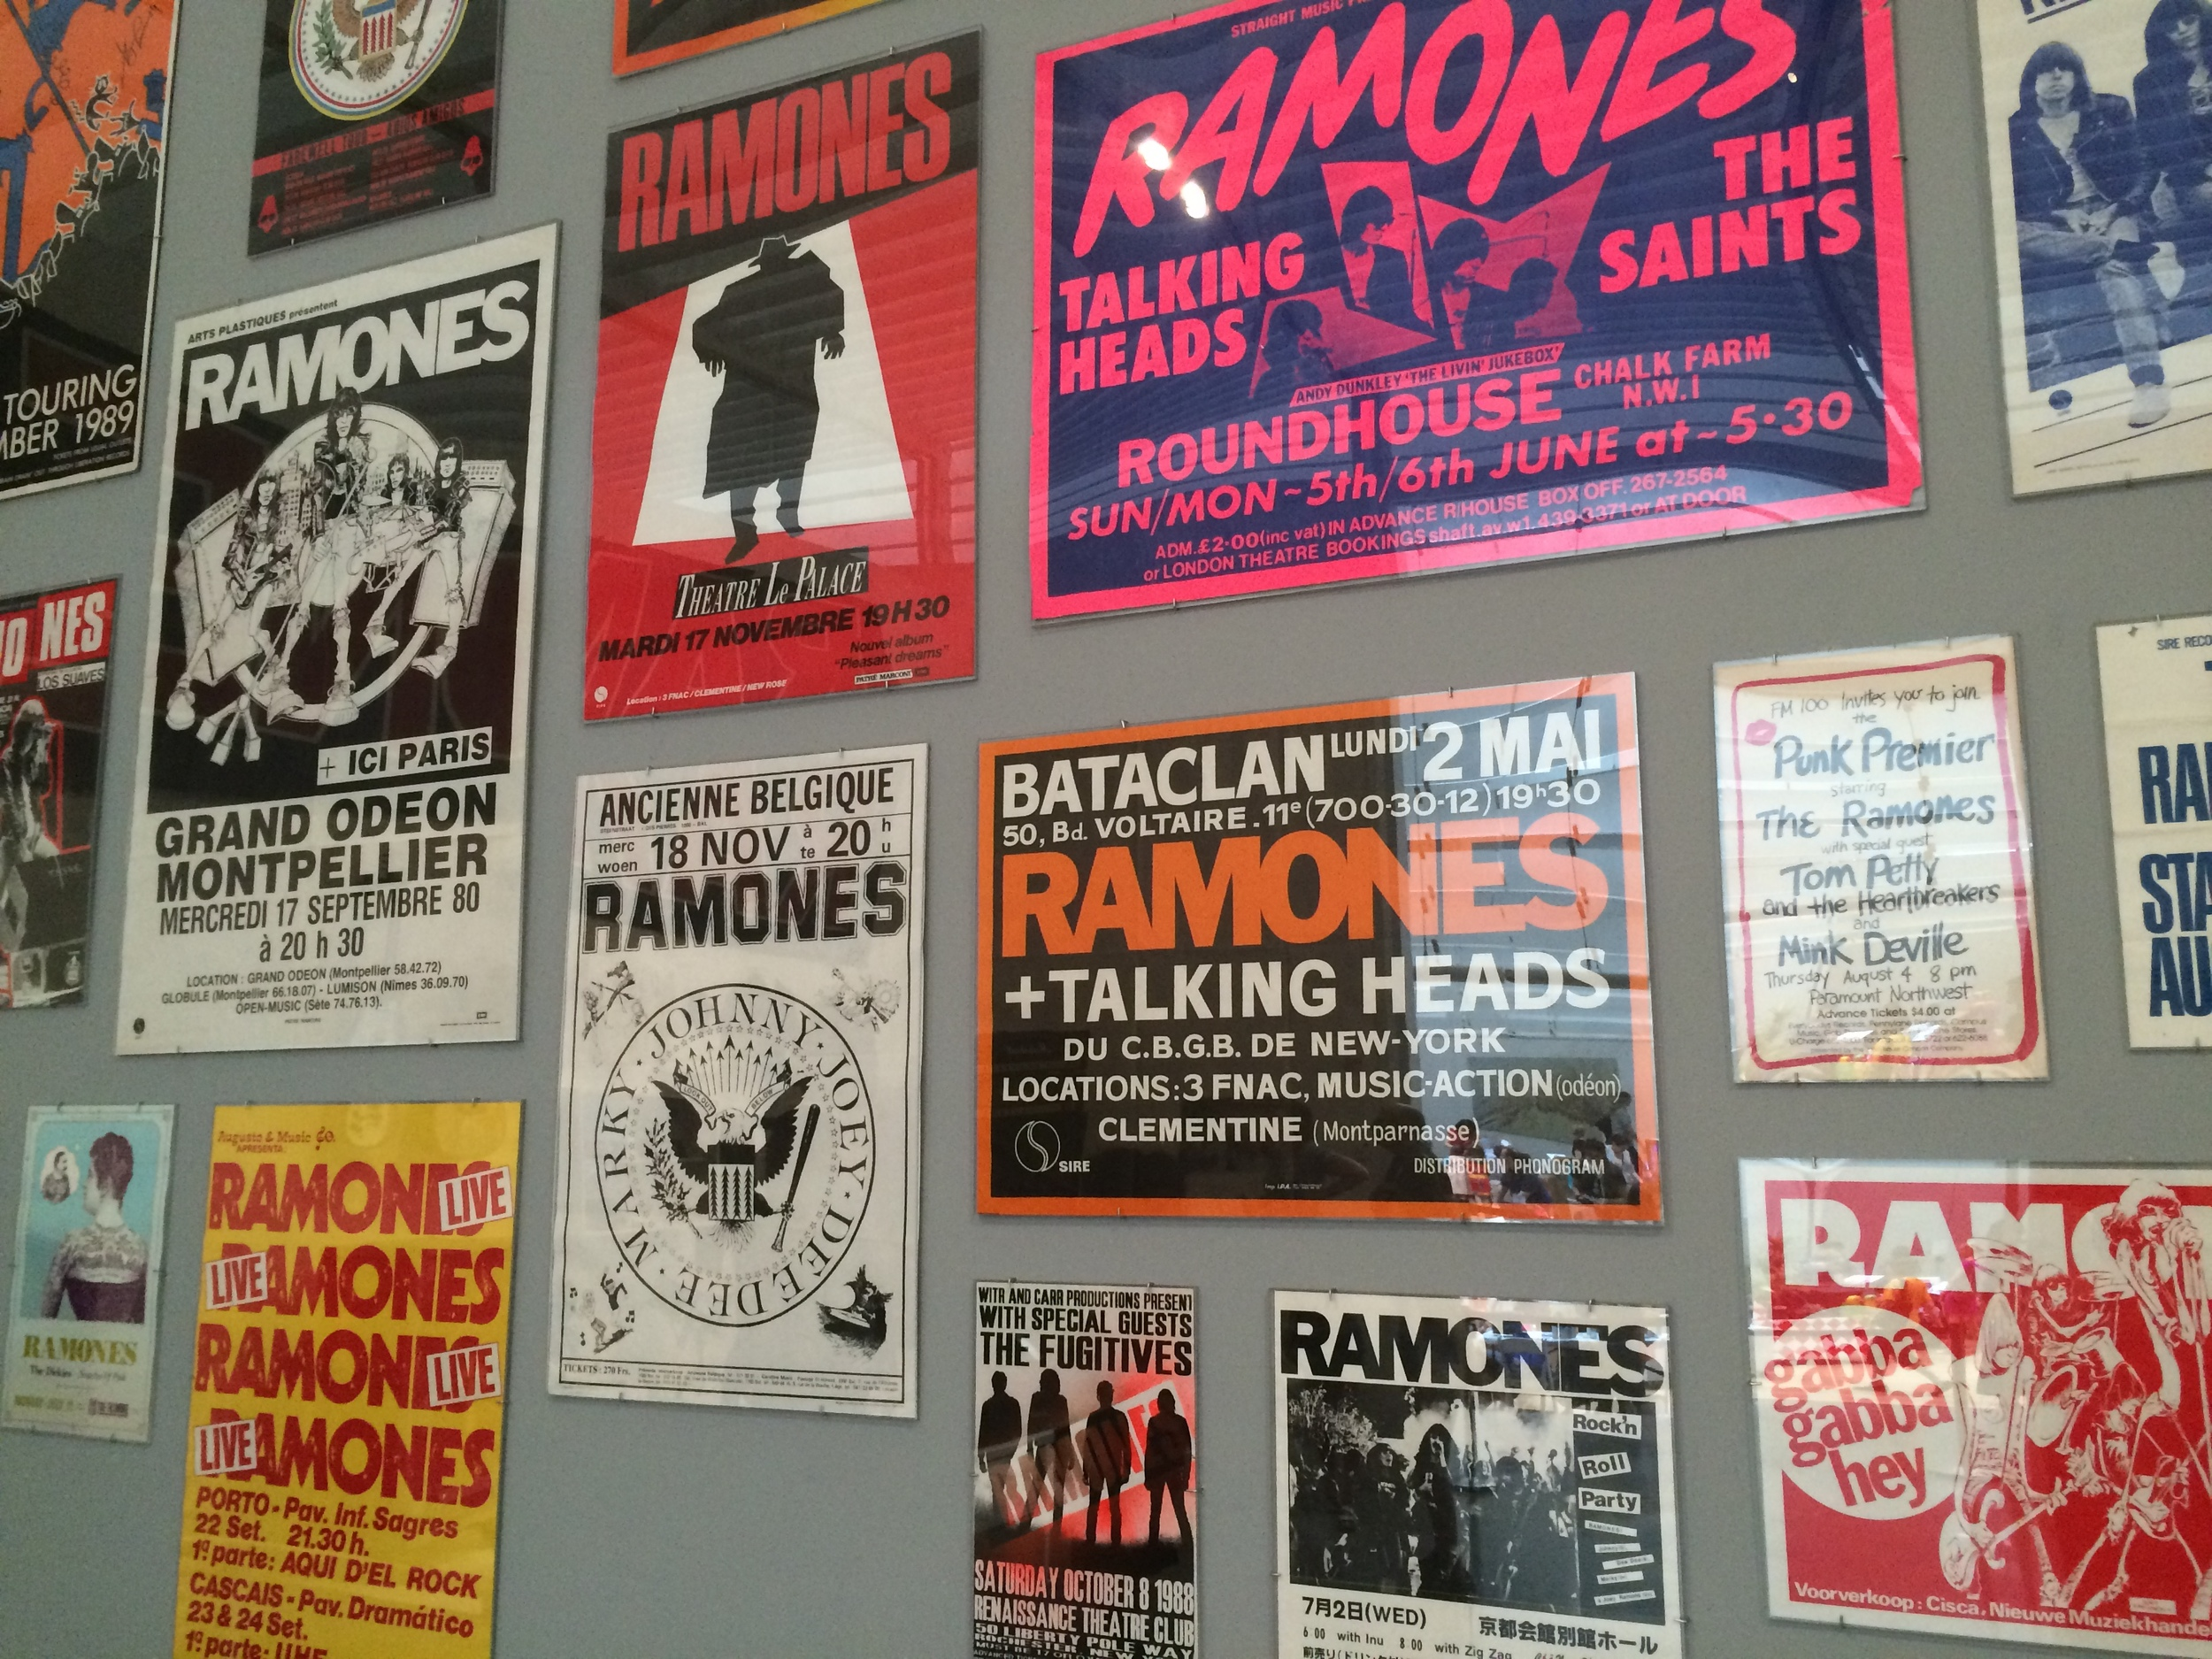 The Talking Heads opened for the Ramones when they played Bataclan, the Paris club that was attacked by terrorists last year.